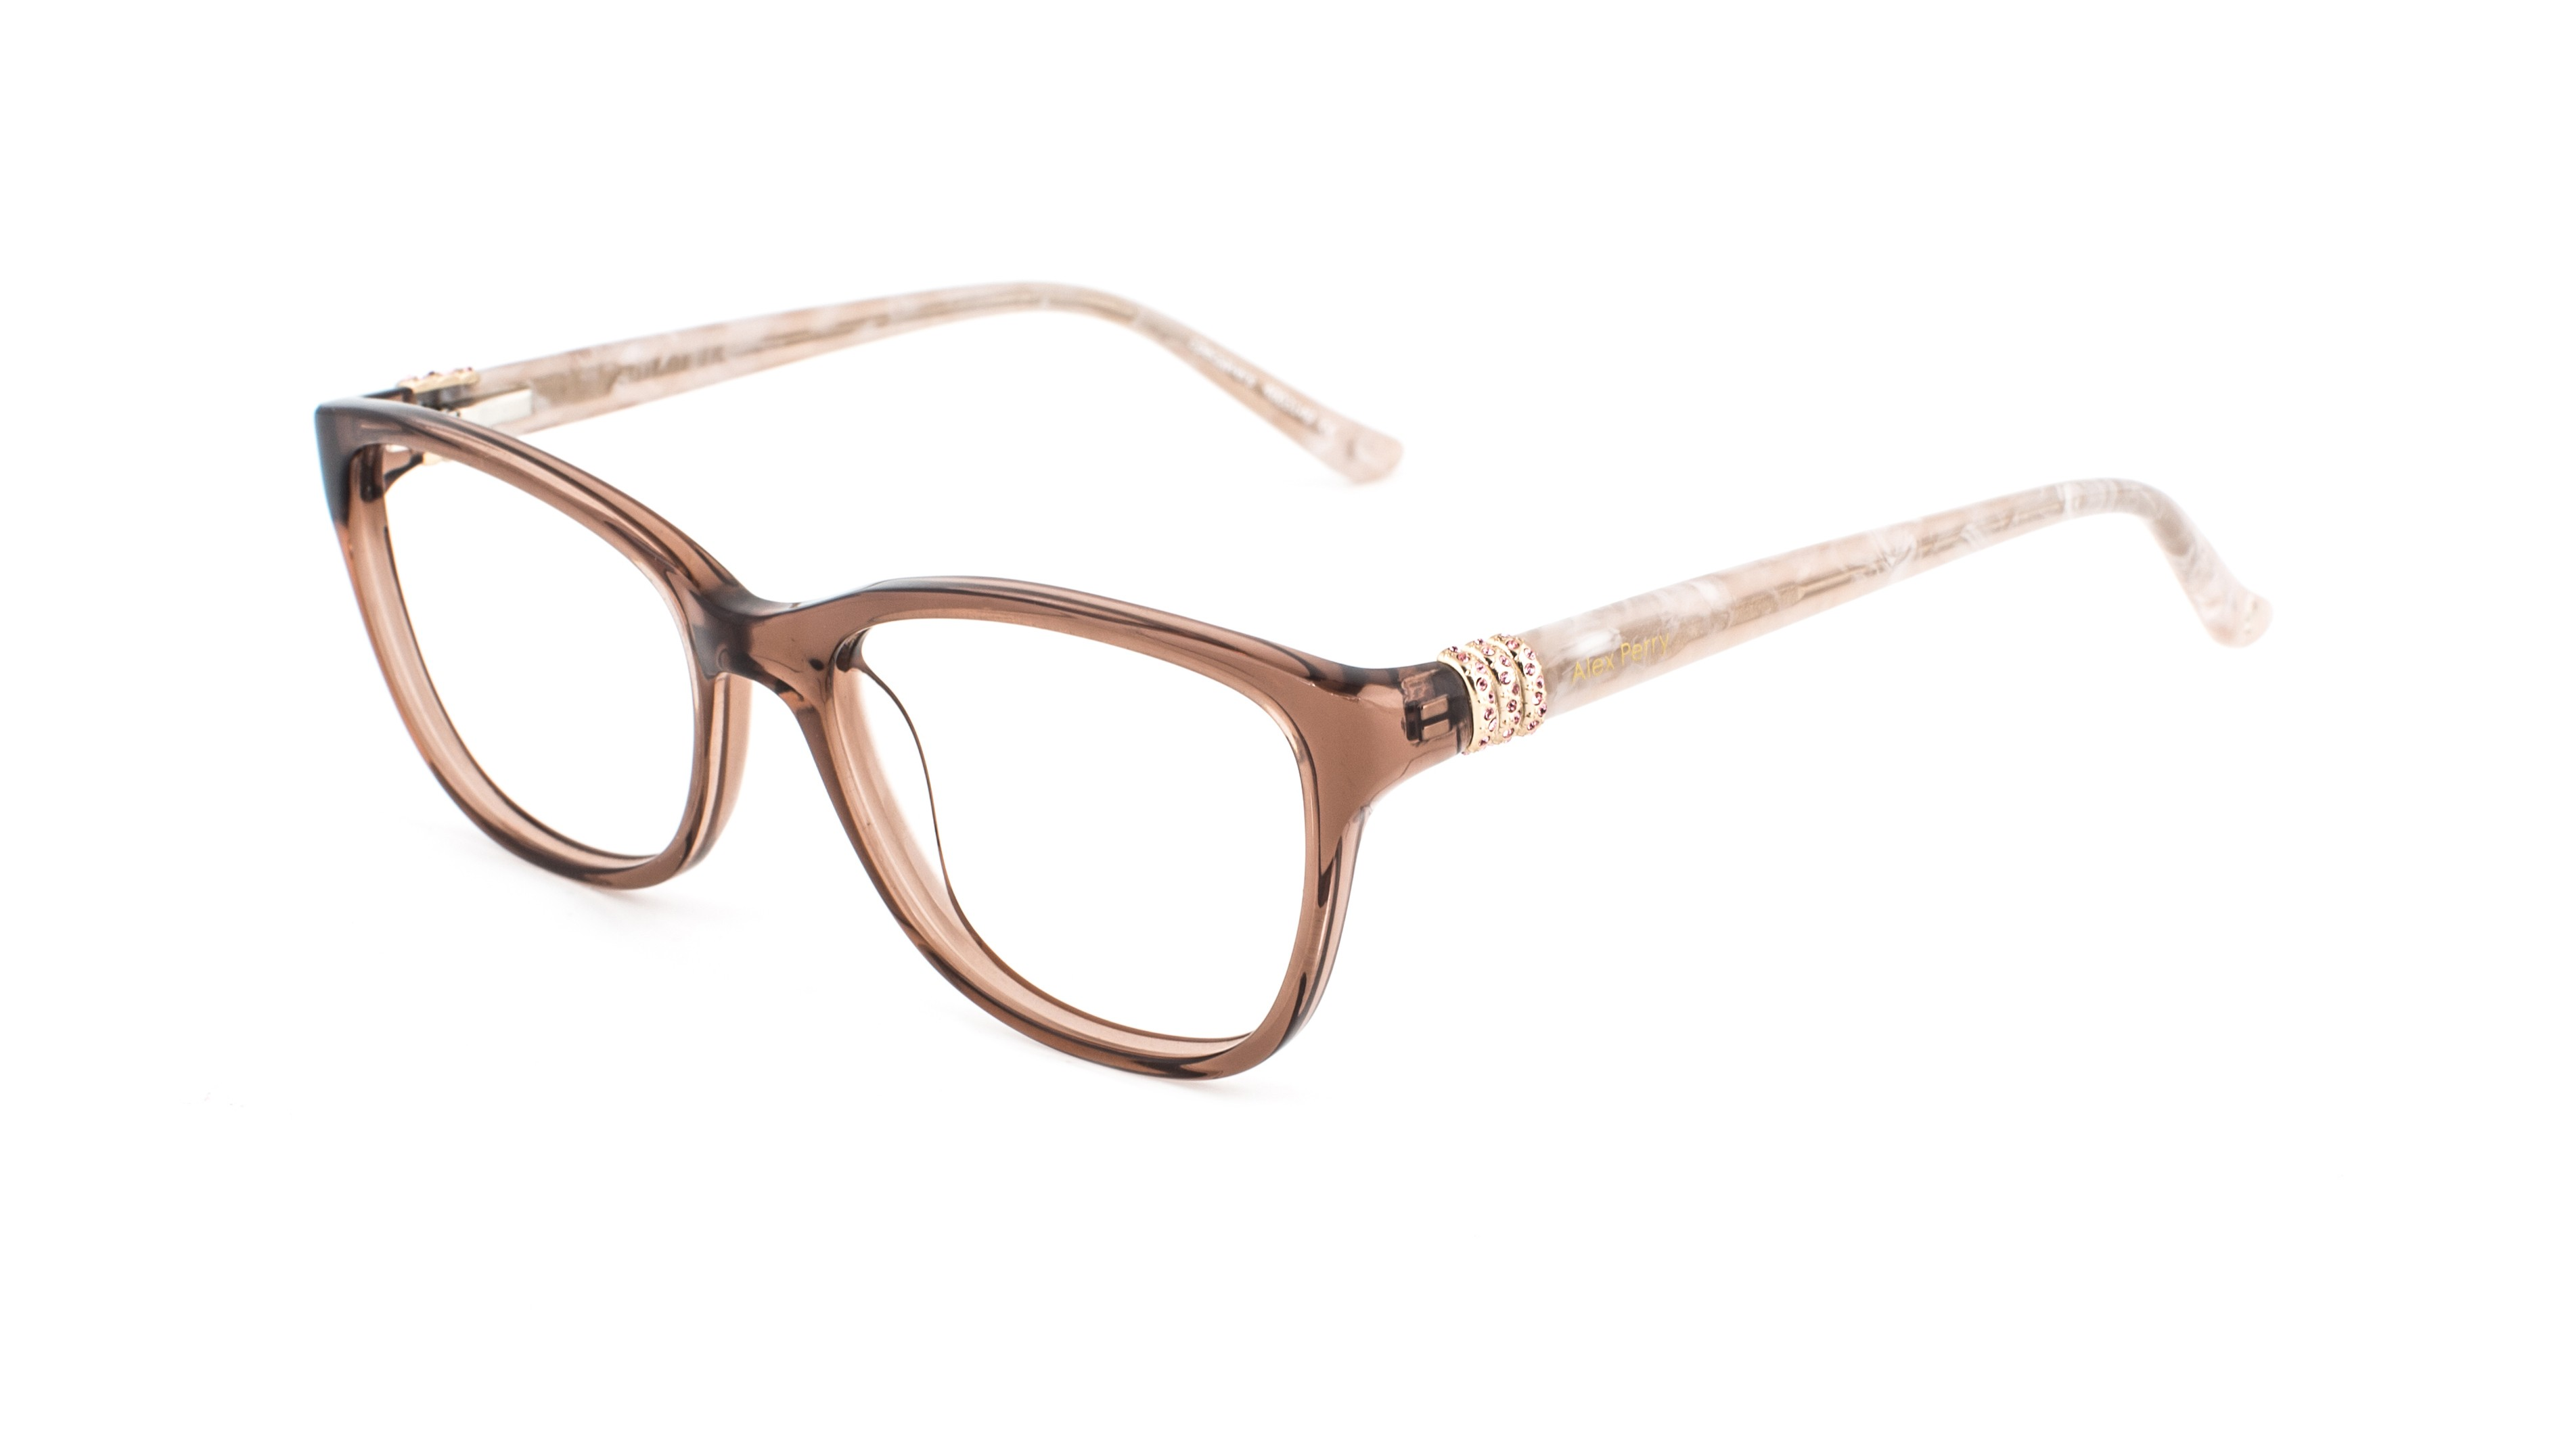 Frame Of Mind - The Specsavers Eyewear Trends of 2015 ...